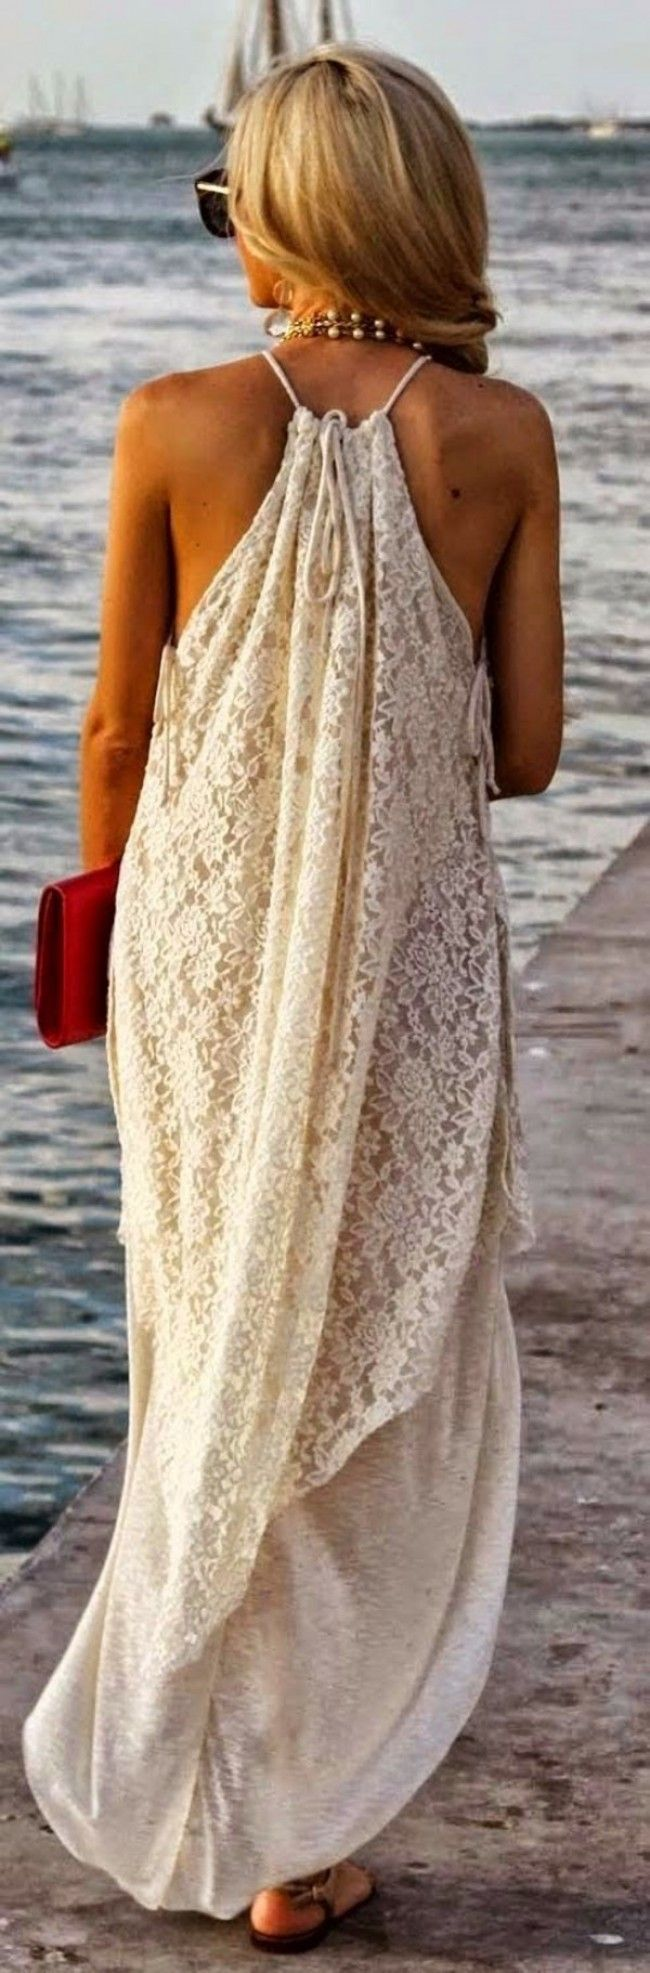 22 summer wedding day looks for guests styles weekly for Bohemian dresses for a wedding guest